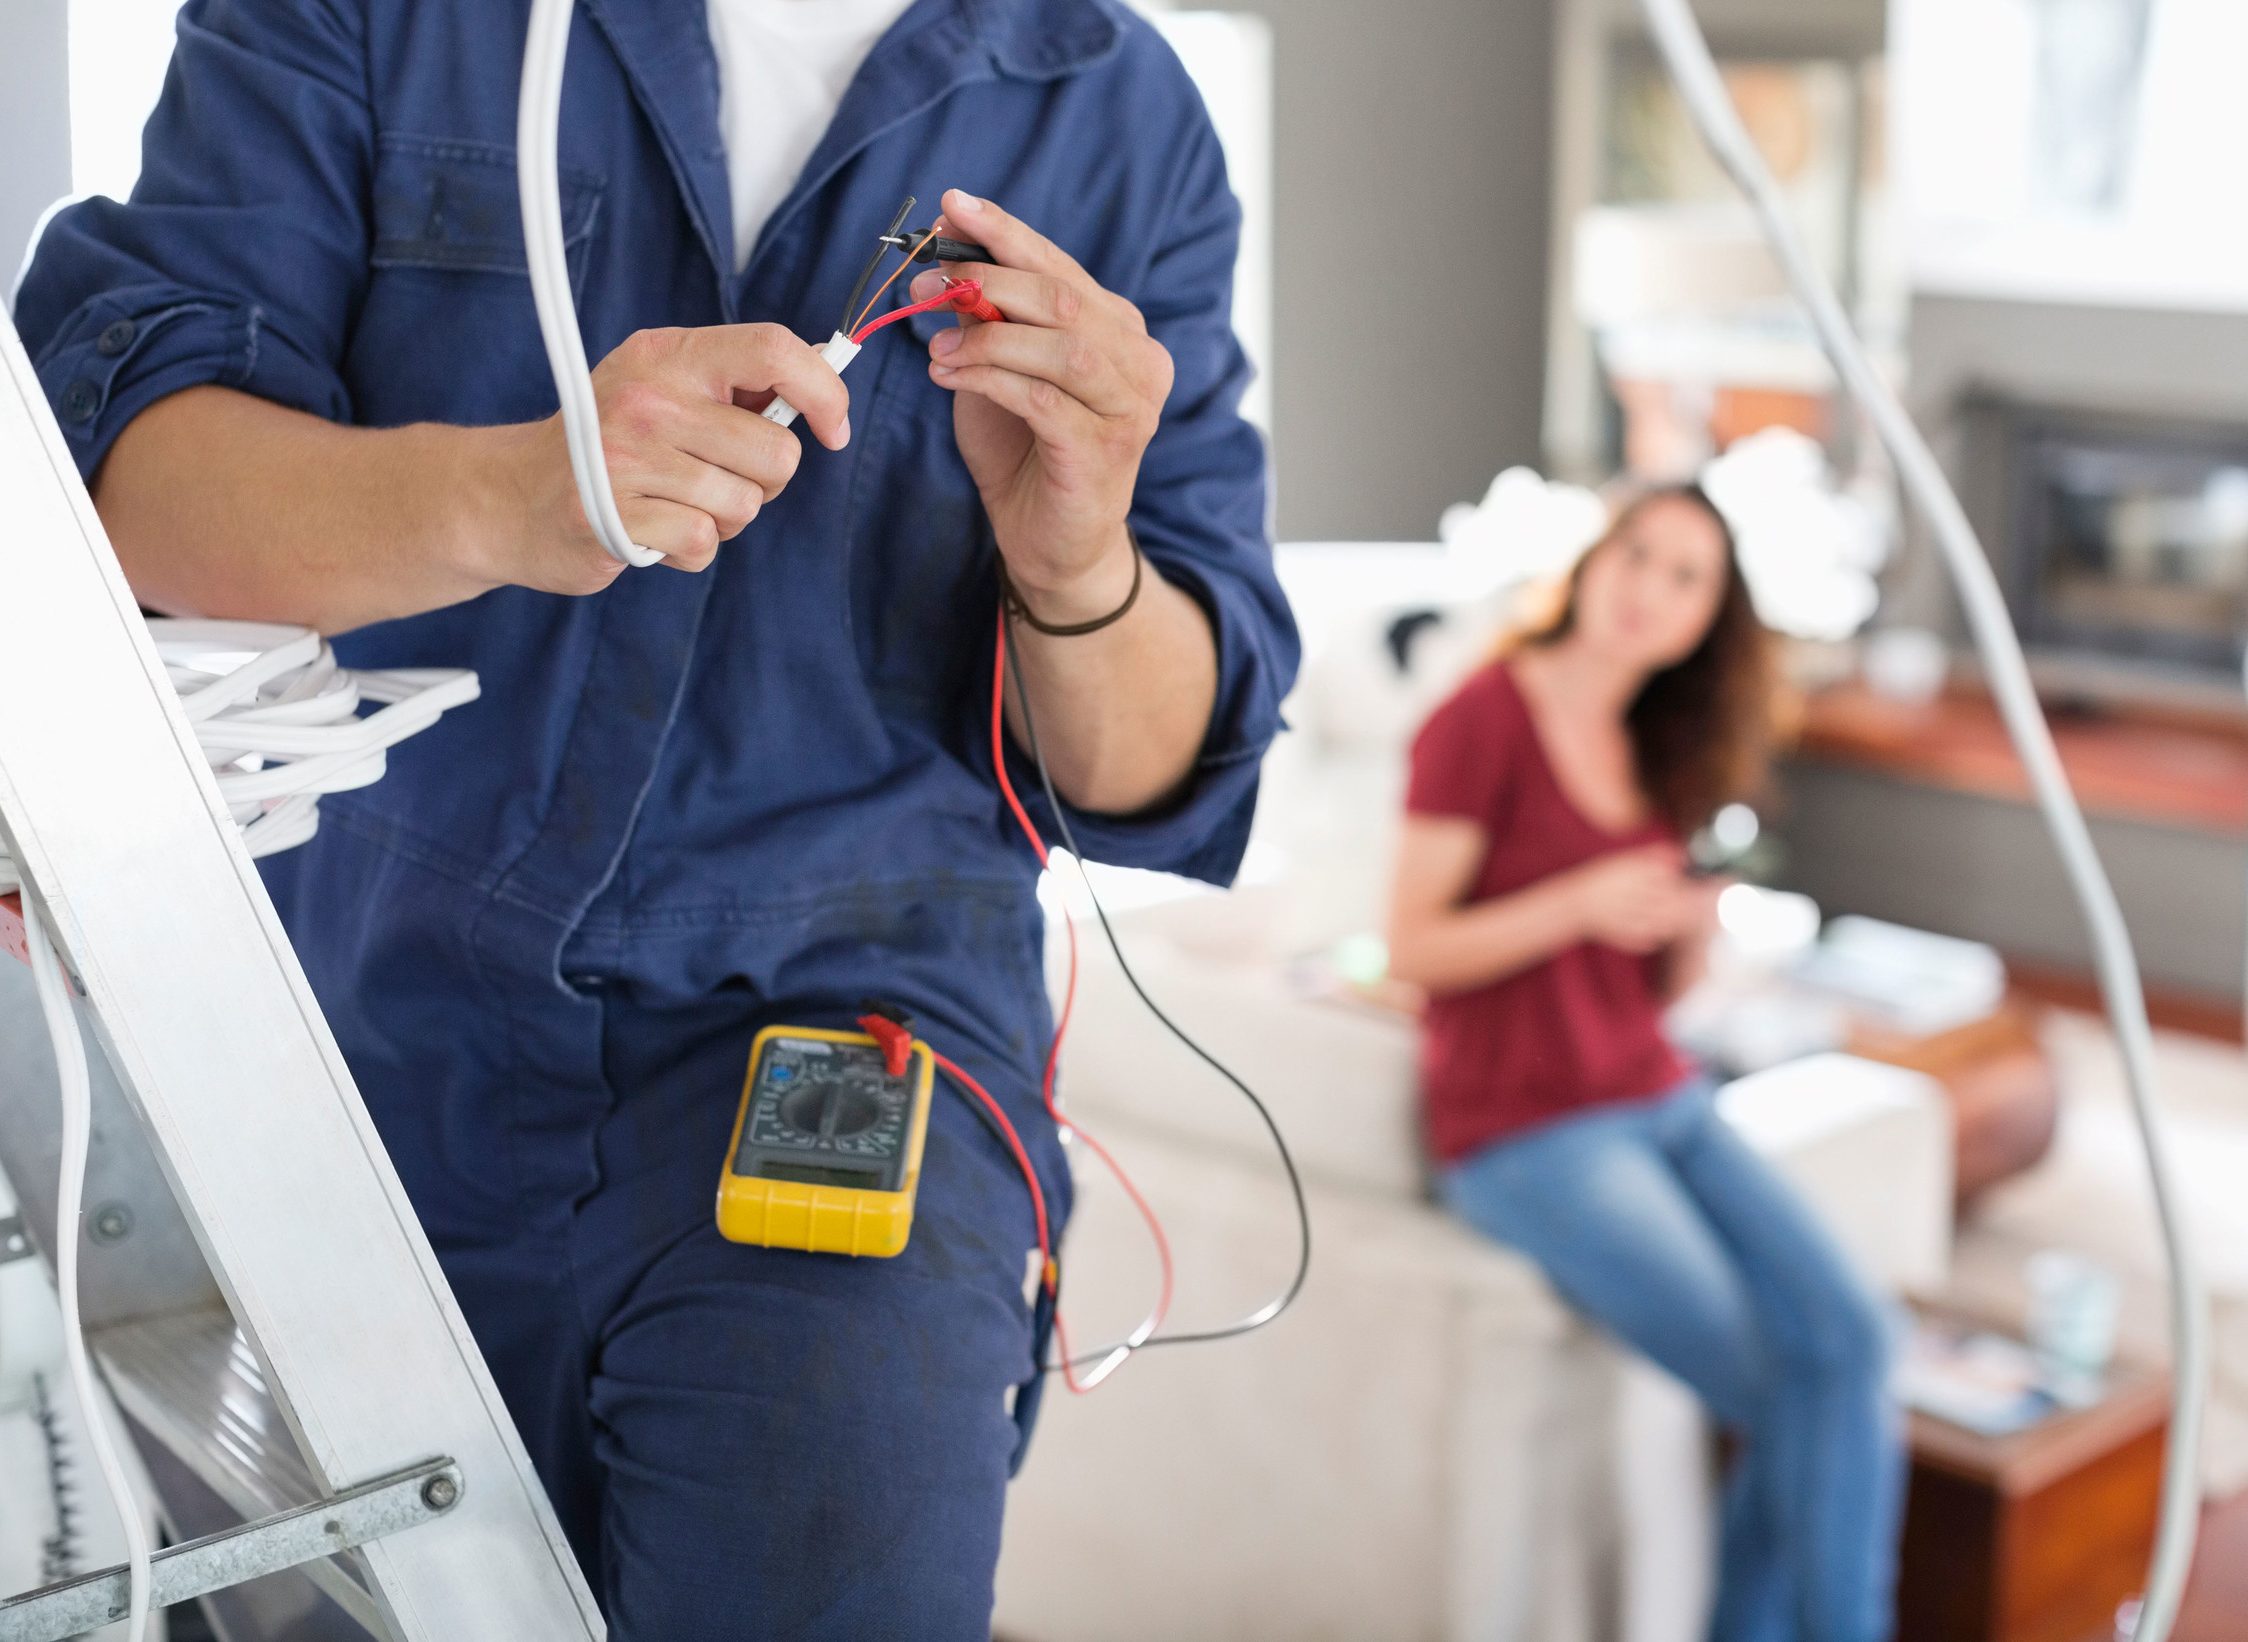 Finding an electrician